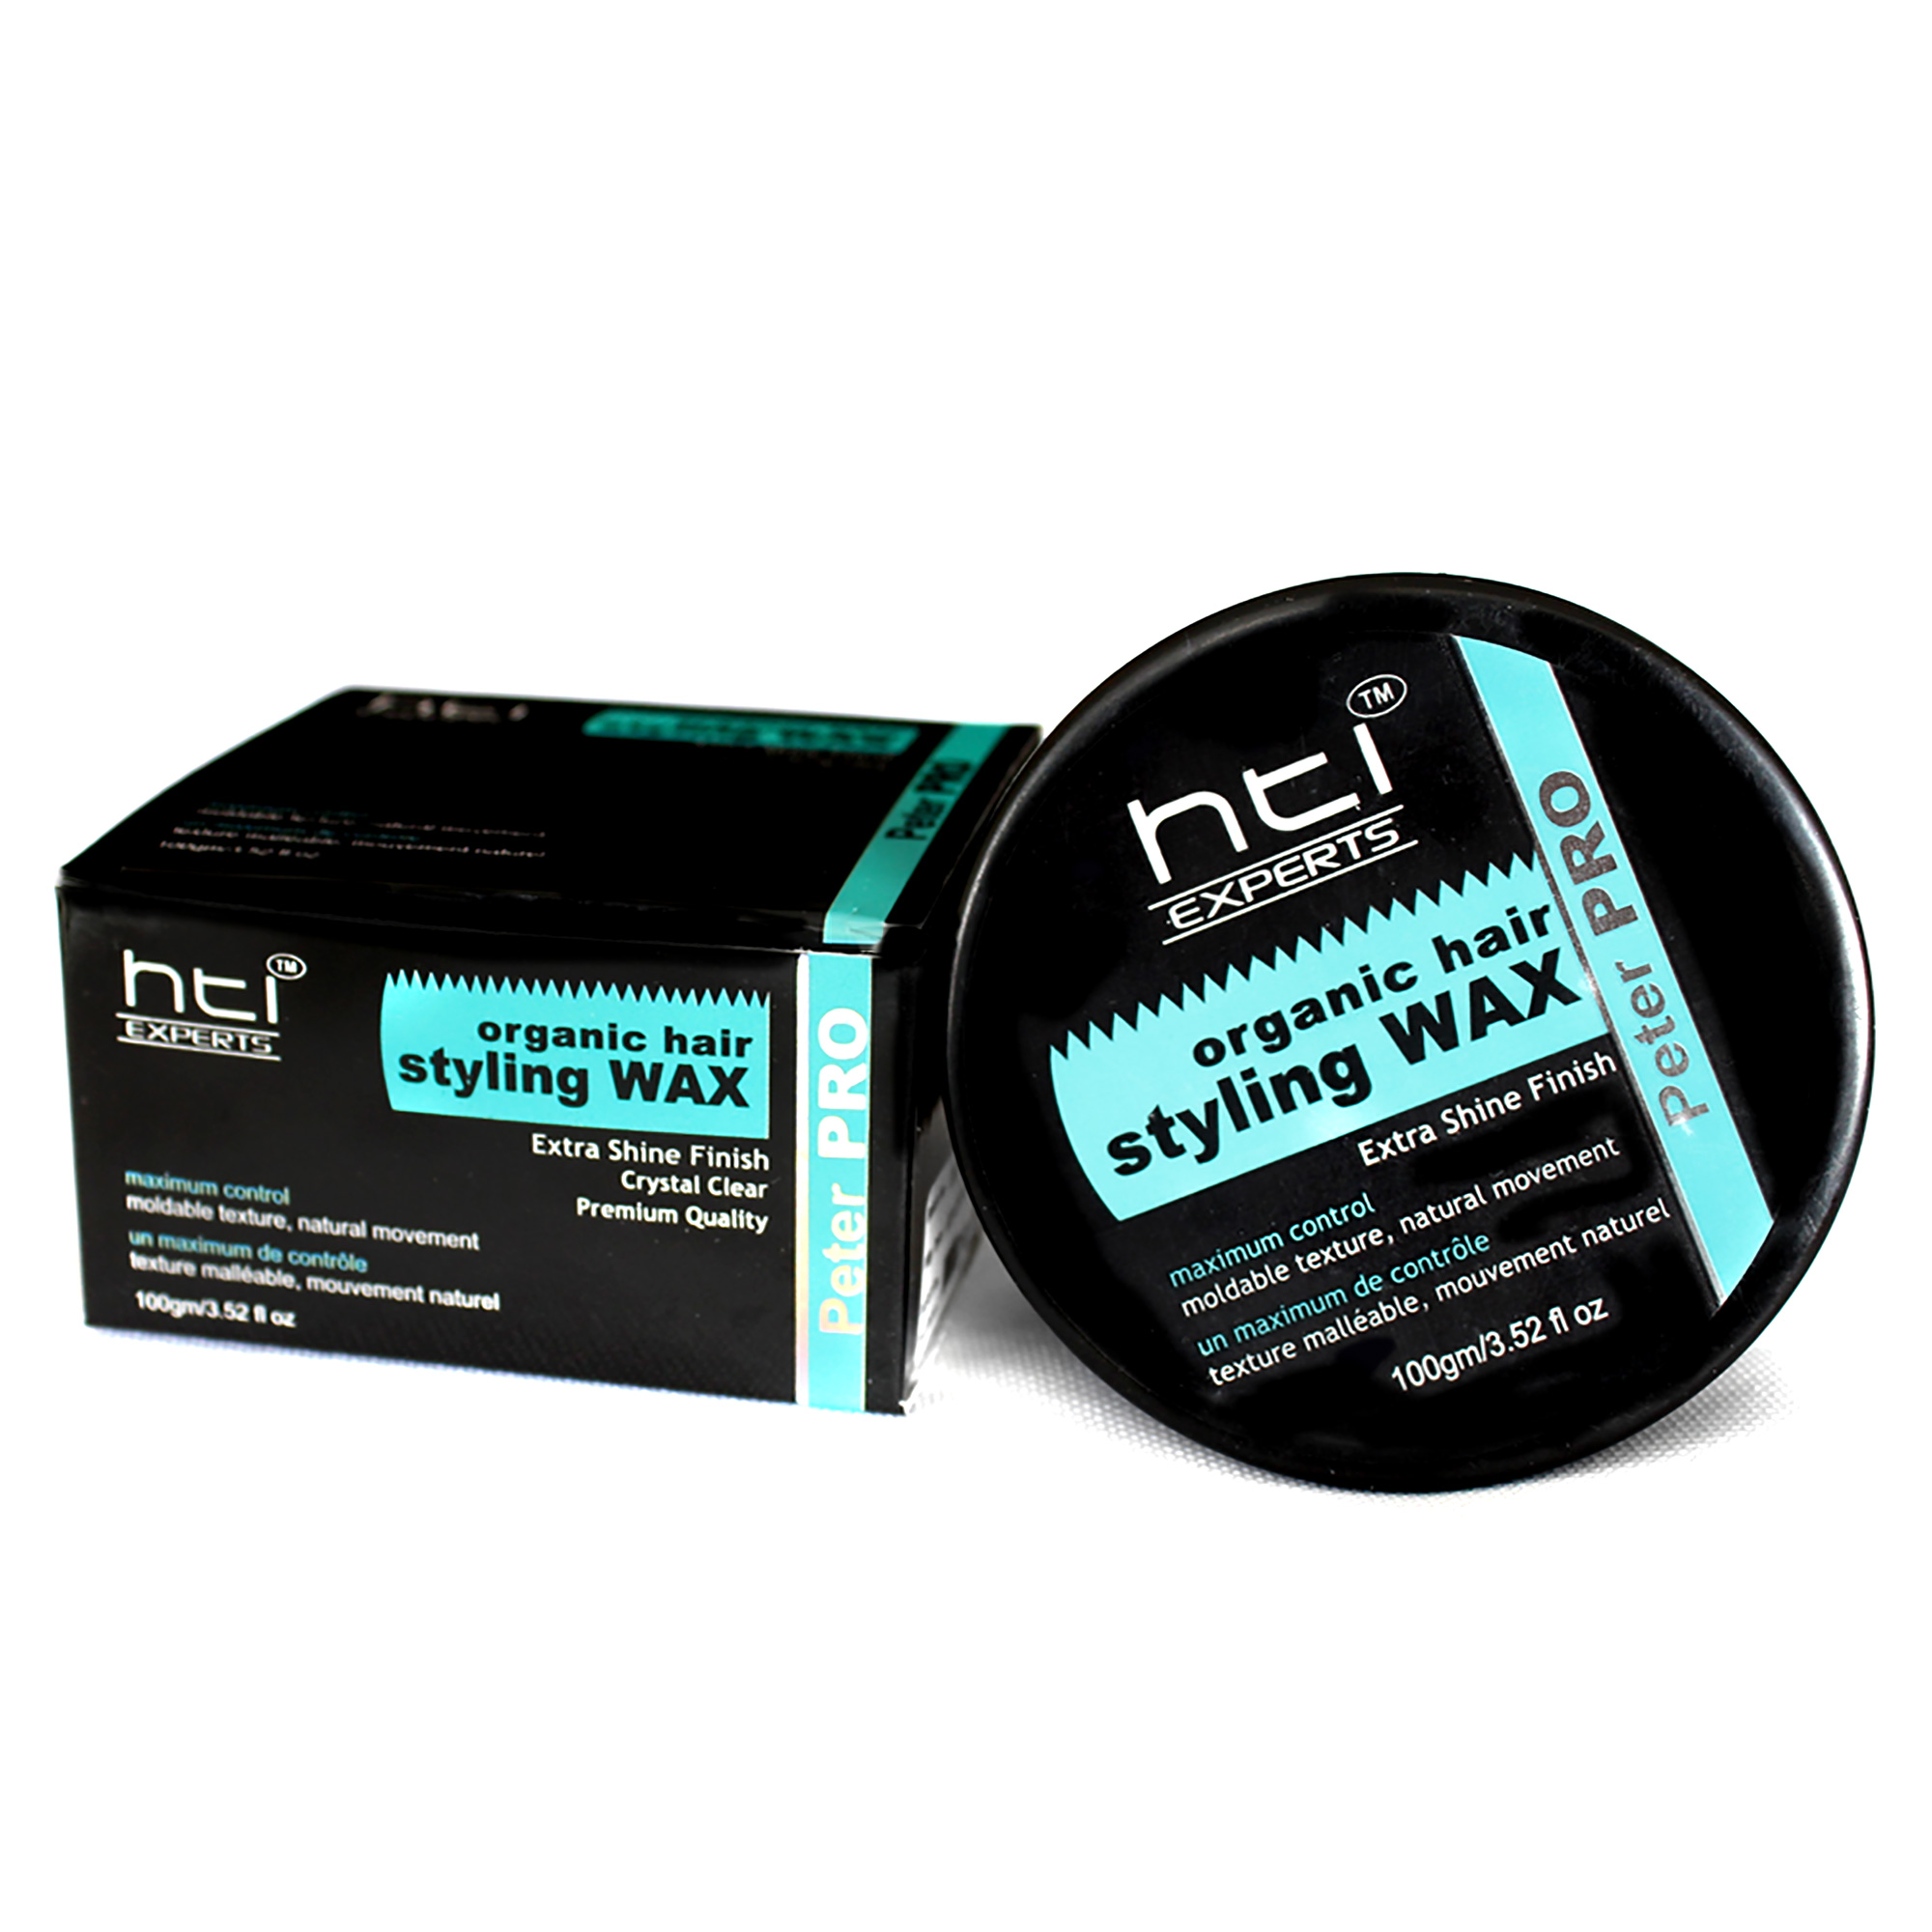 Organic Hair Styling Wax Ultra Strong Hti Experts